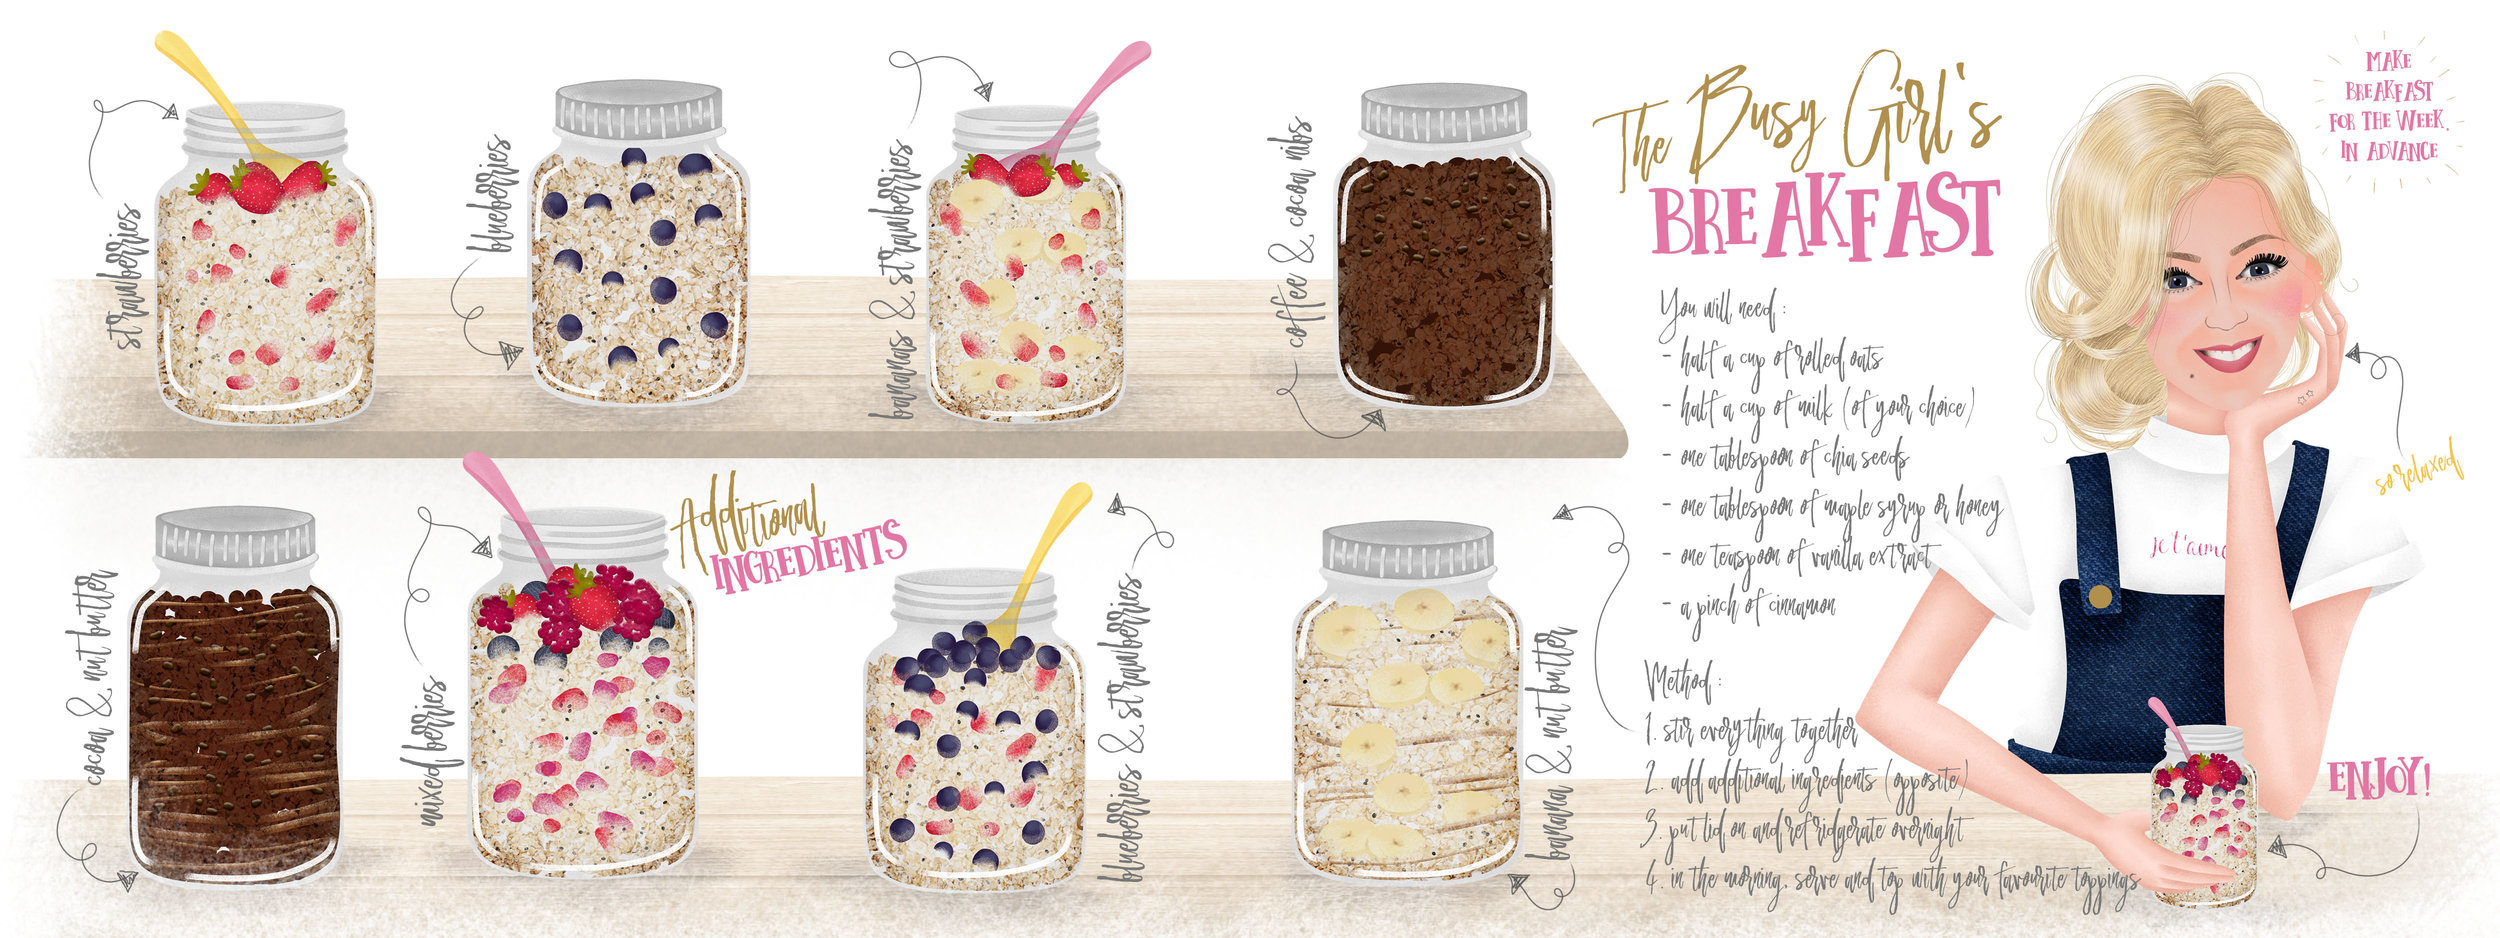 The Busy Girl's Breakfast  – make-ahead overnight oatmeal jars, that can be stored in the fridge for a week.